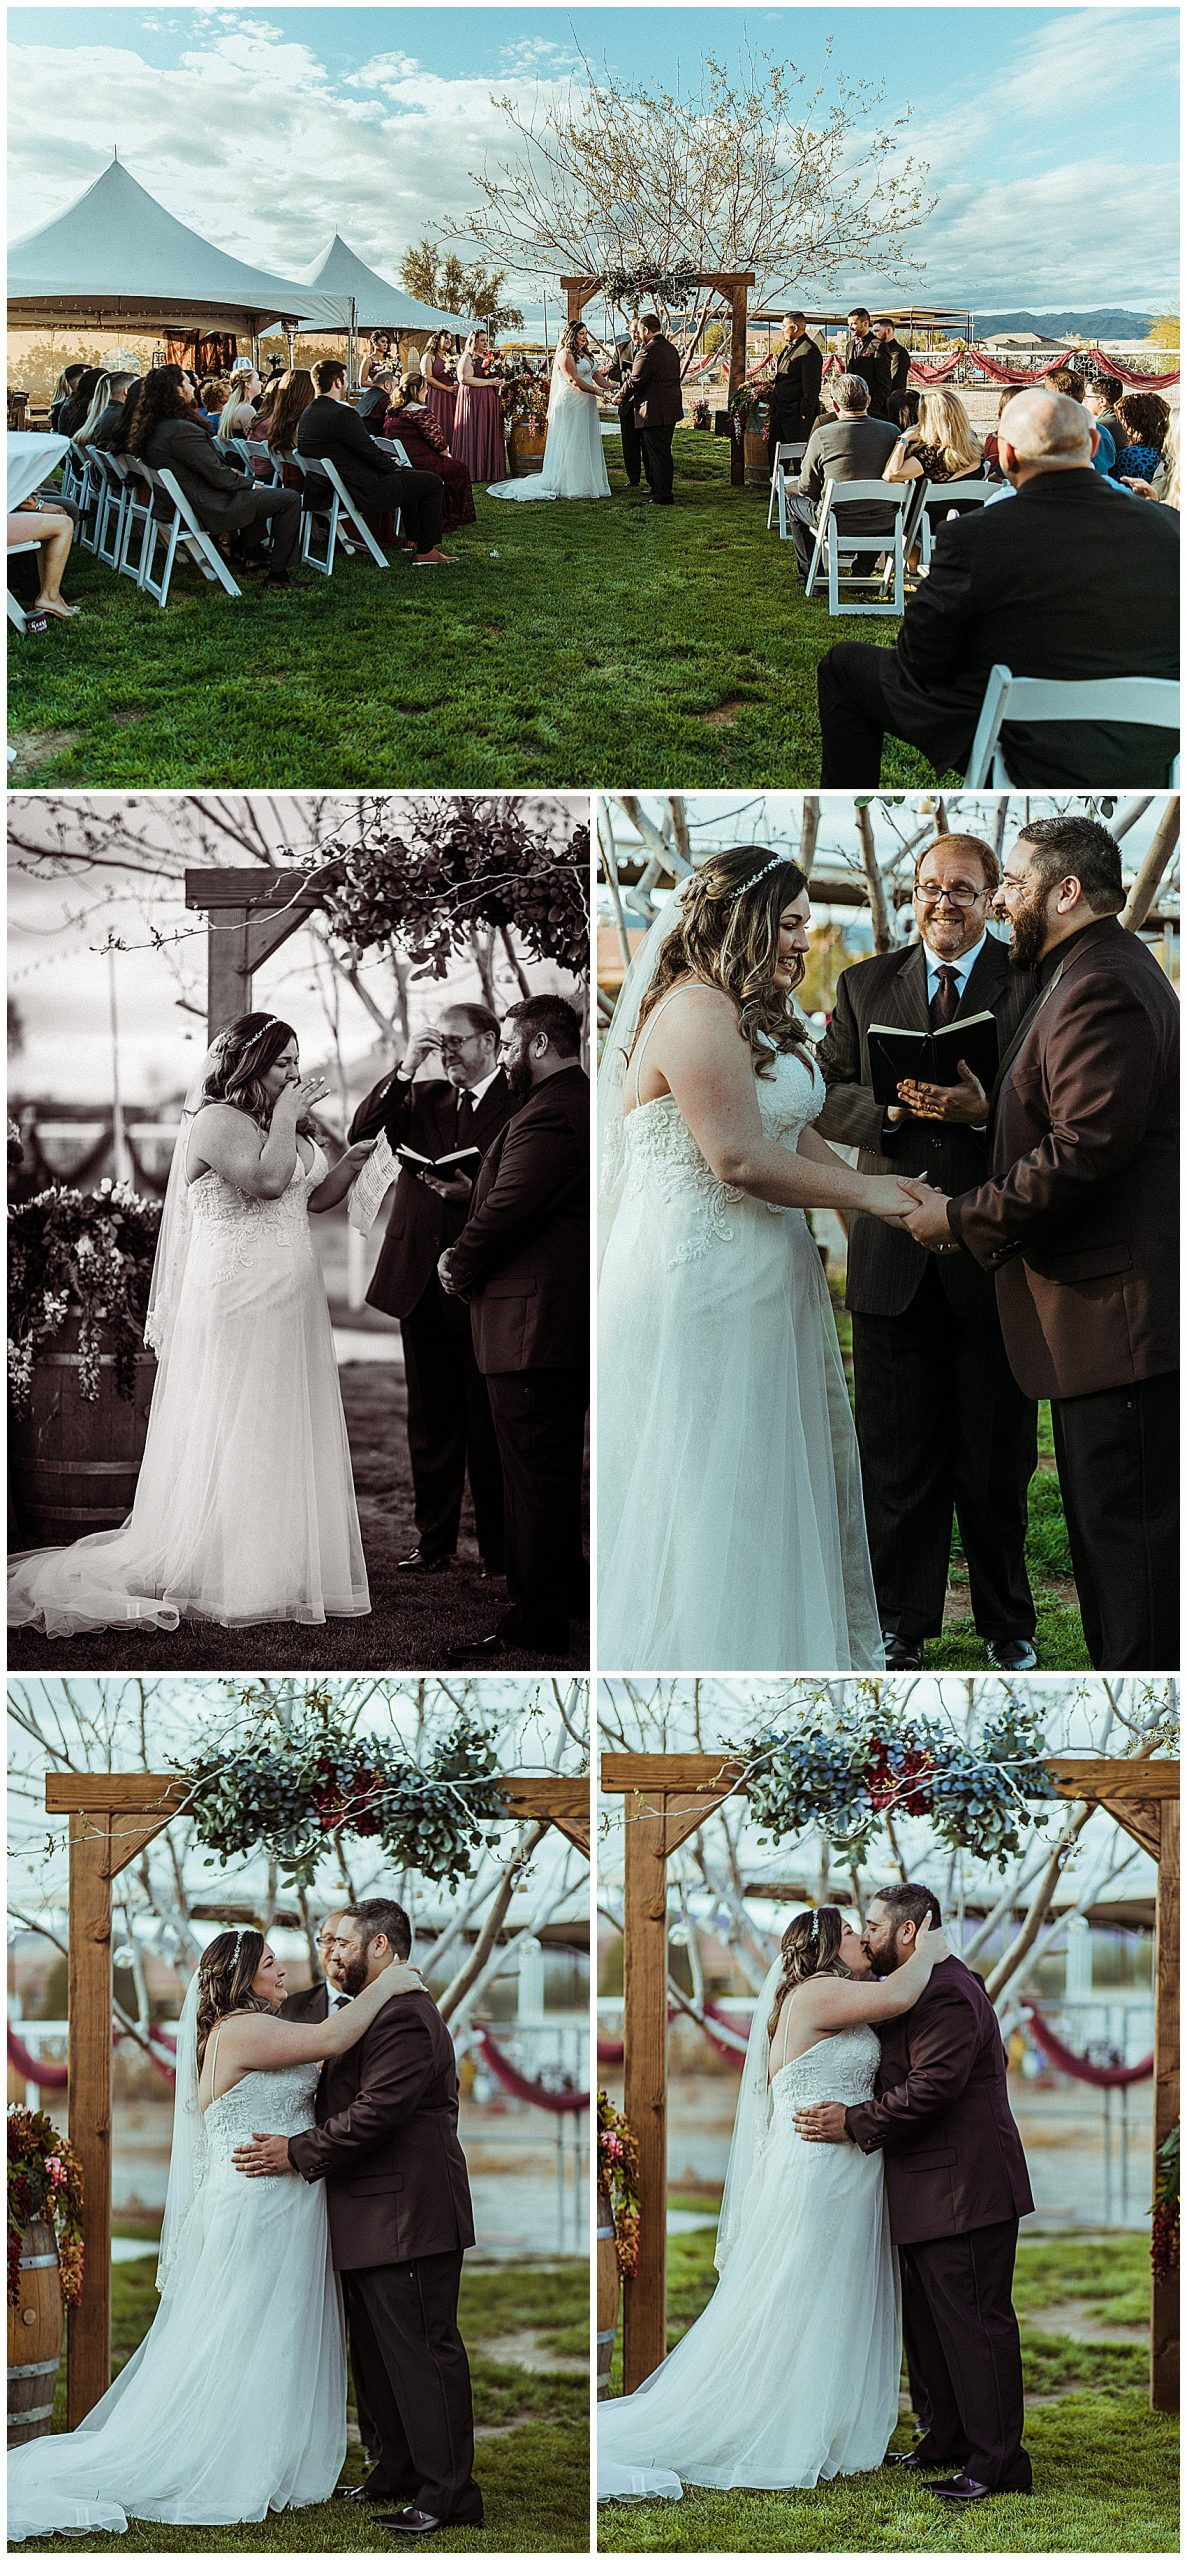 Bride and groom share vows during a small backyard wedding ceremony.